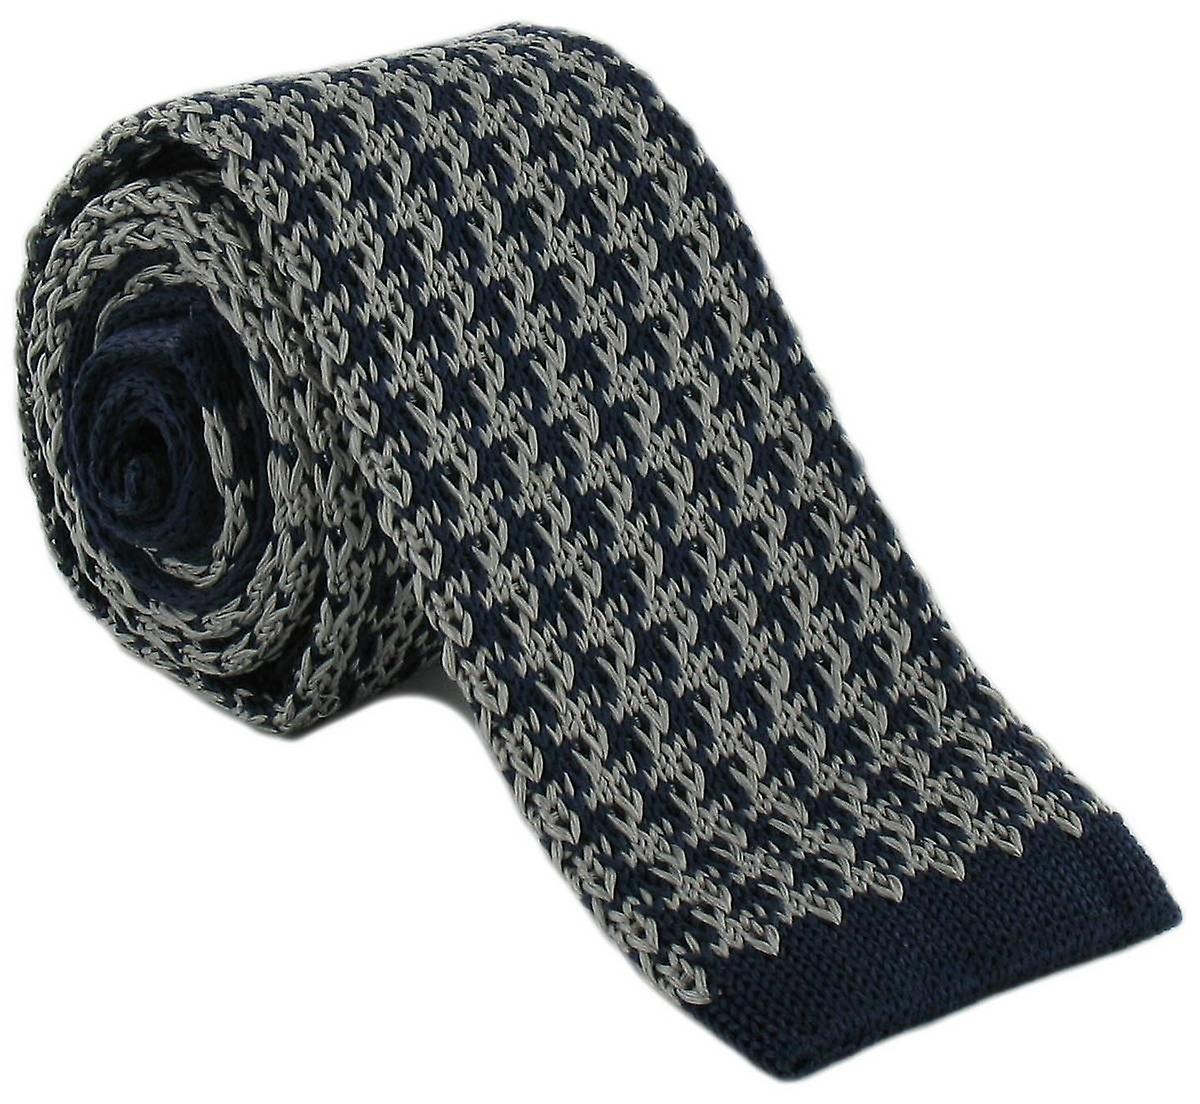 Michelsons of London Silk Knitted Houndstooth Skinny Tie - Navy/Grey